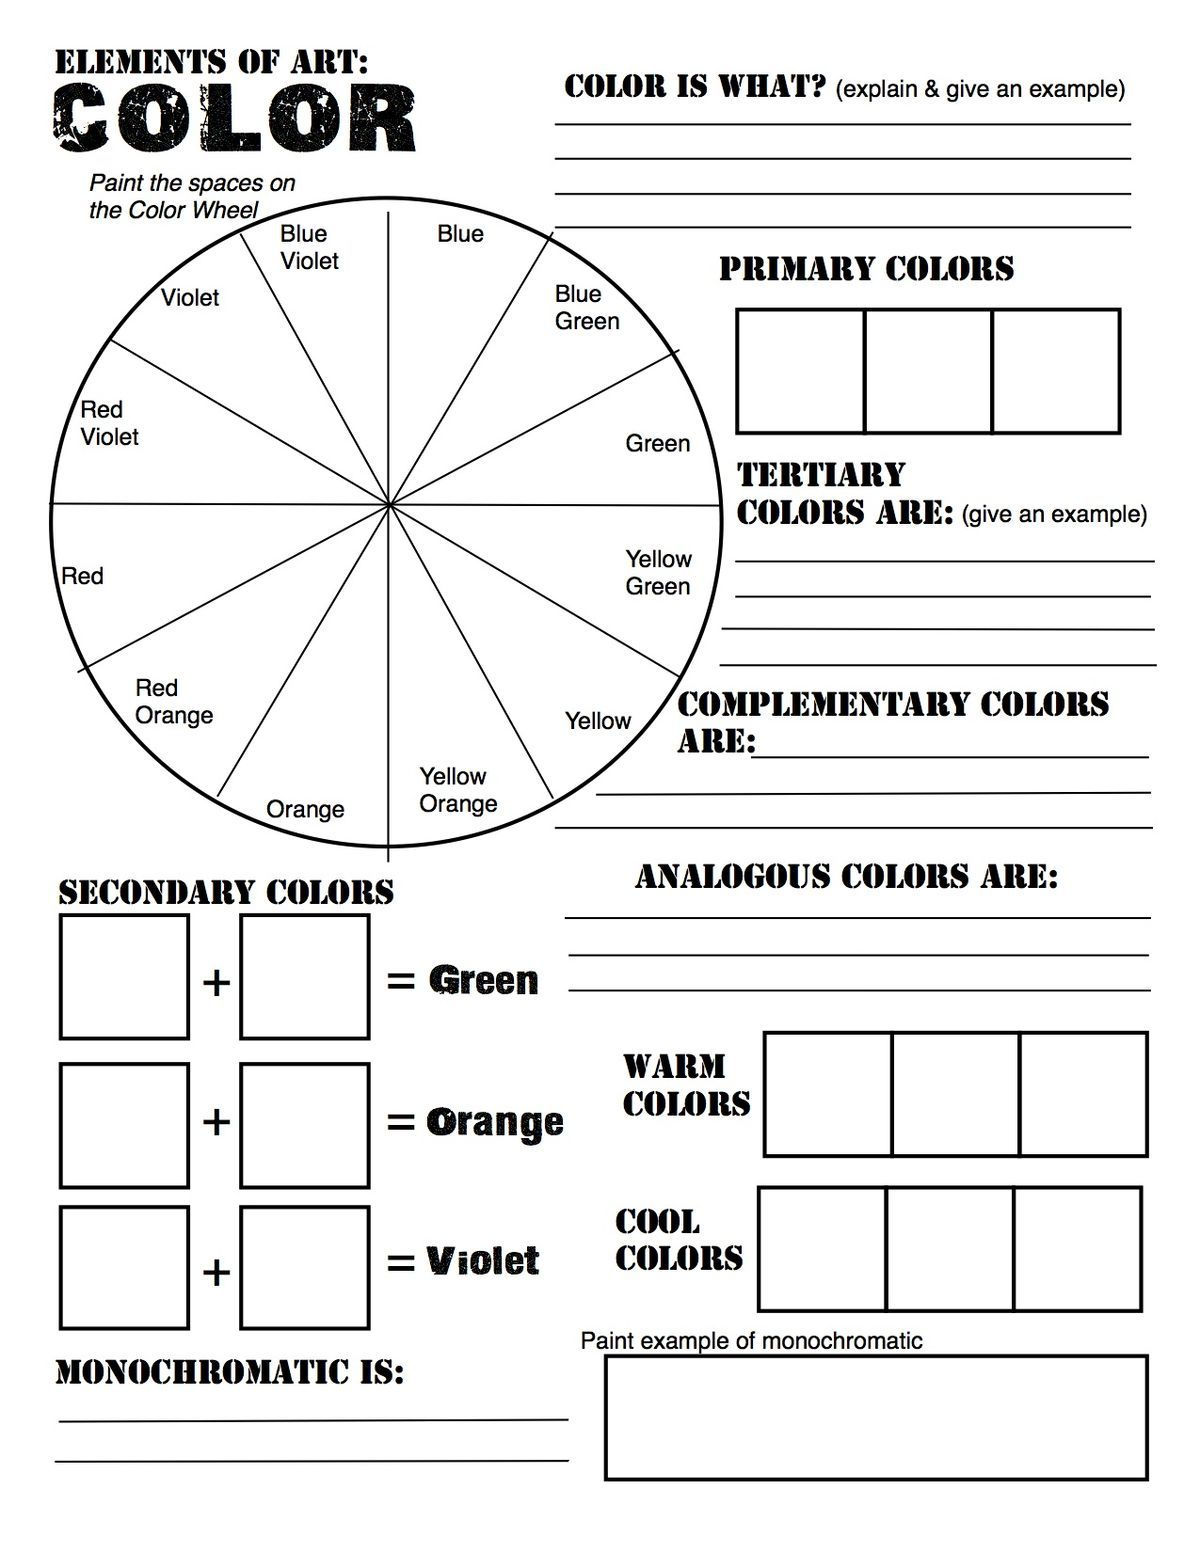 Elements Of Art Colour Wheel Worksheet And Lesson Link To Another Pin About Warm Cool Colours